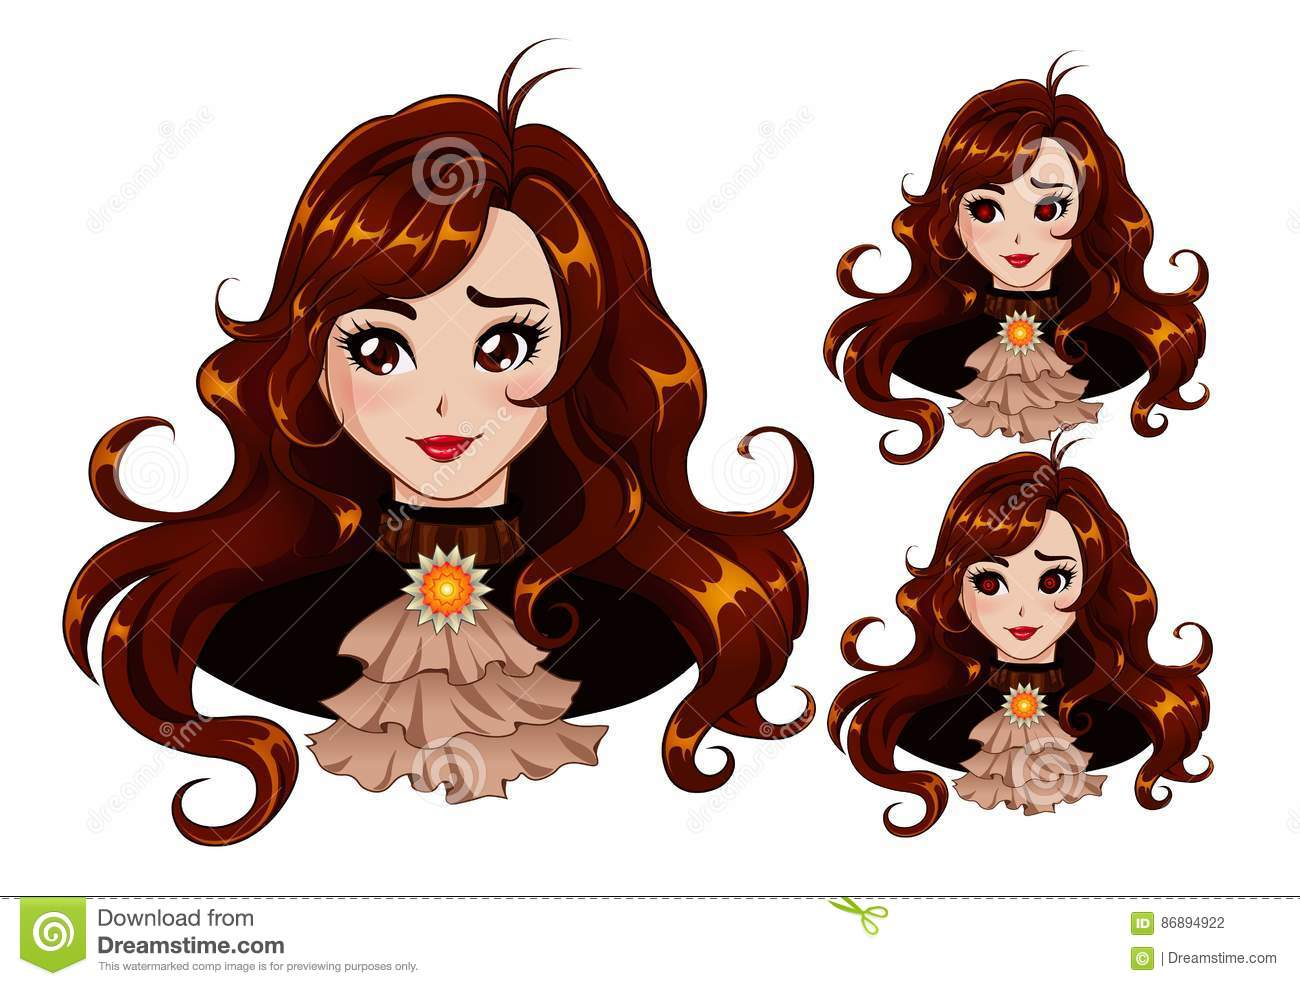 Cute Girl Stock Vector Illustration Of Lips Glowing 86894922